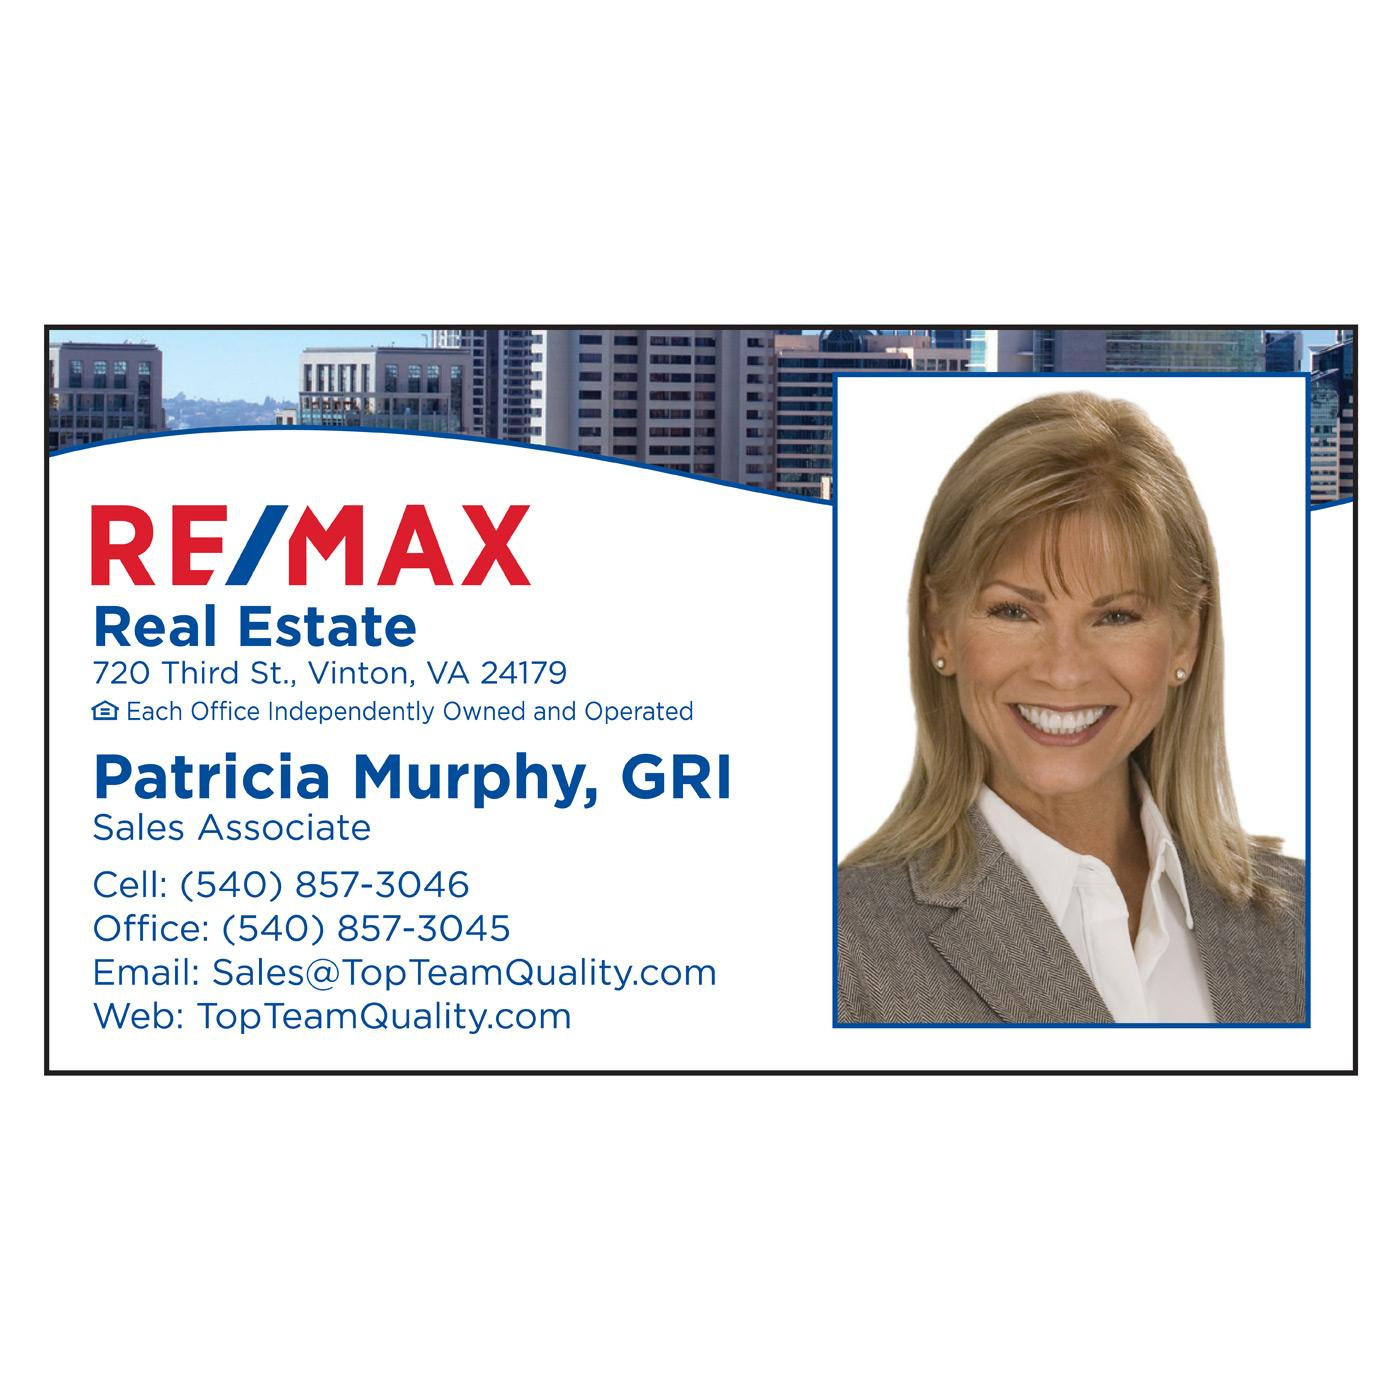 RE/MAX business card city skyline